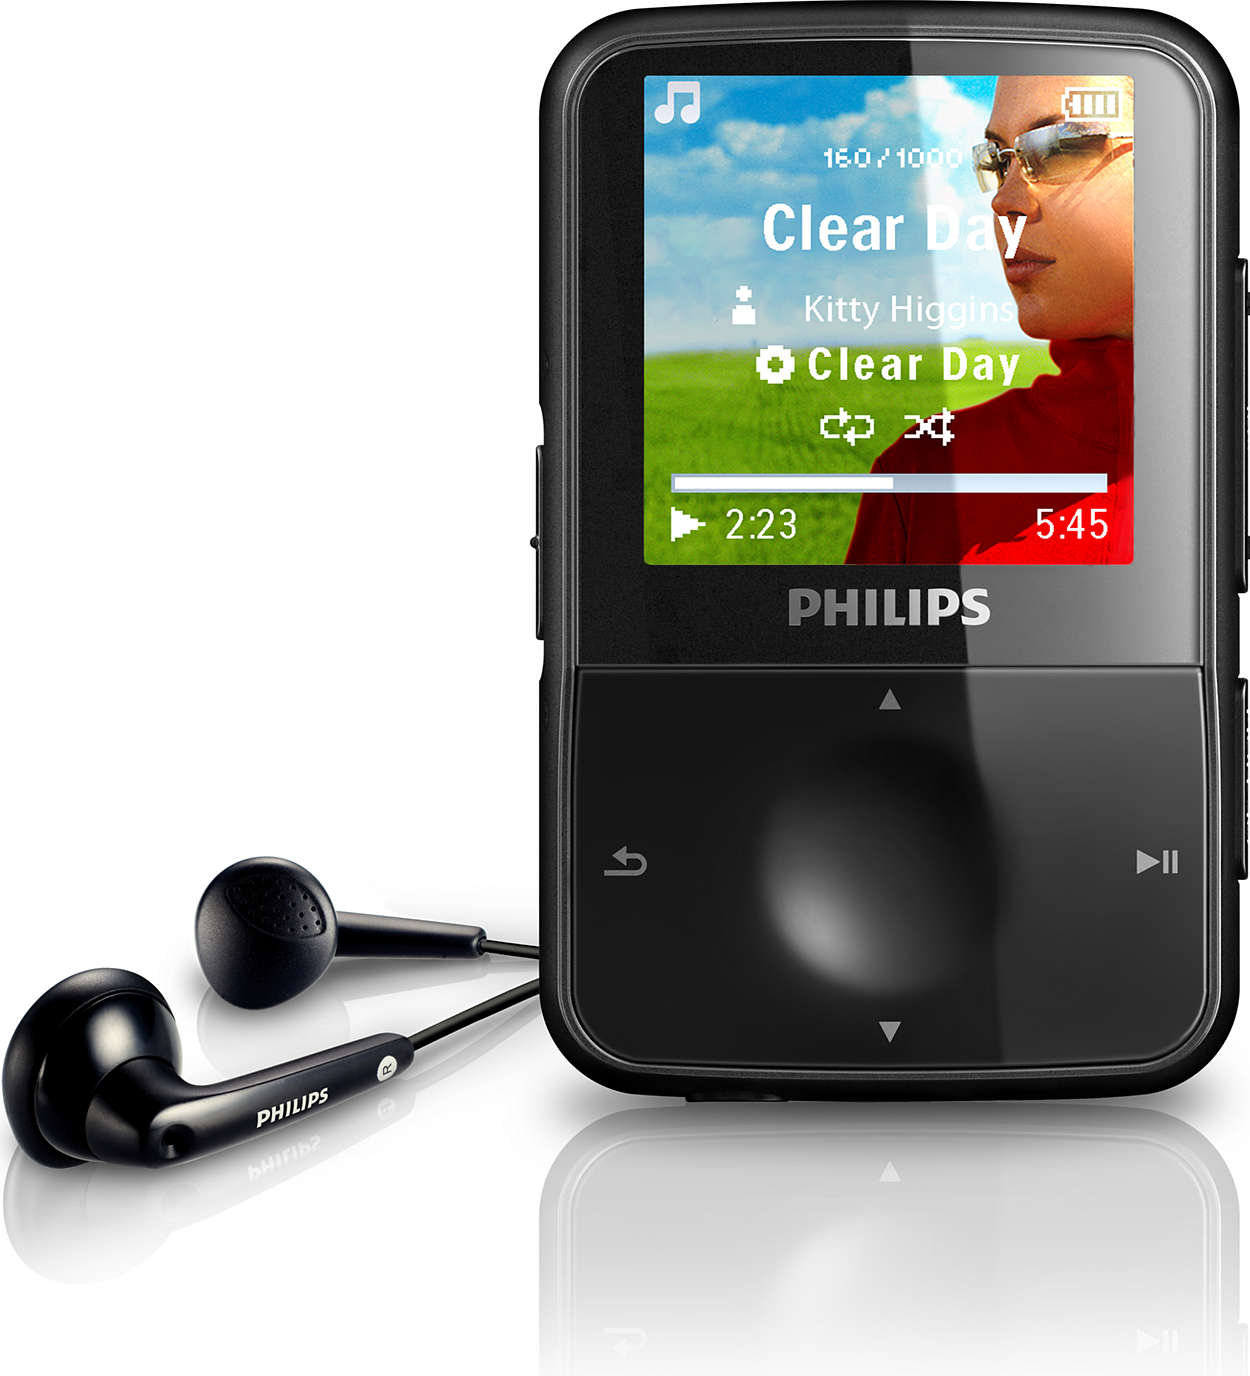 mp3 video player sa1vbe04k 97 philips. Black Bedroom Furniture Sets. Home Design Ideas